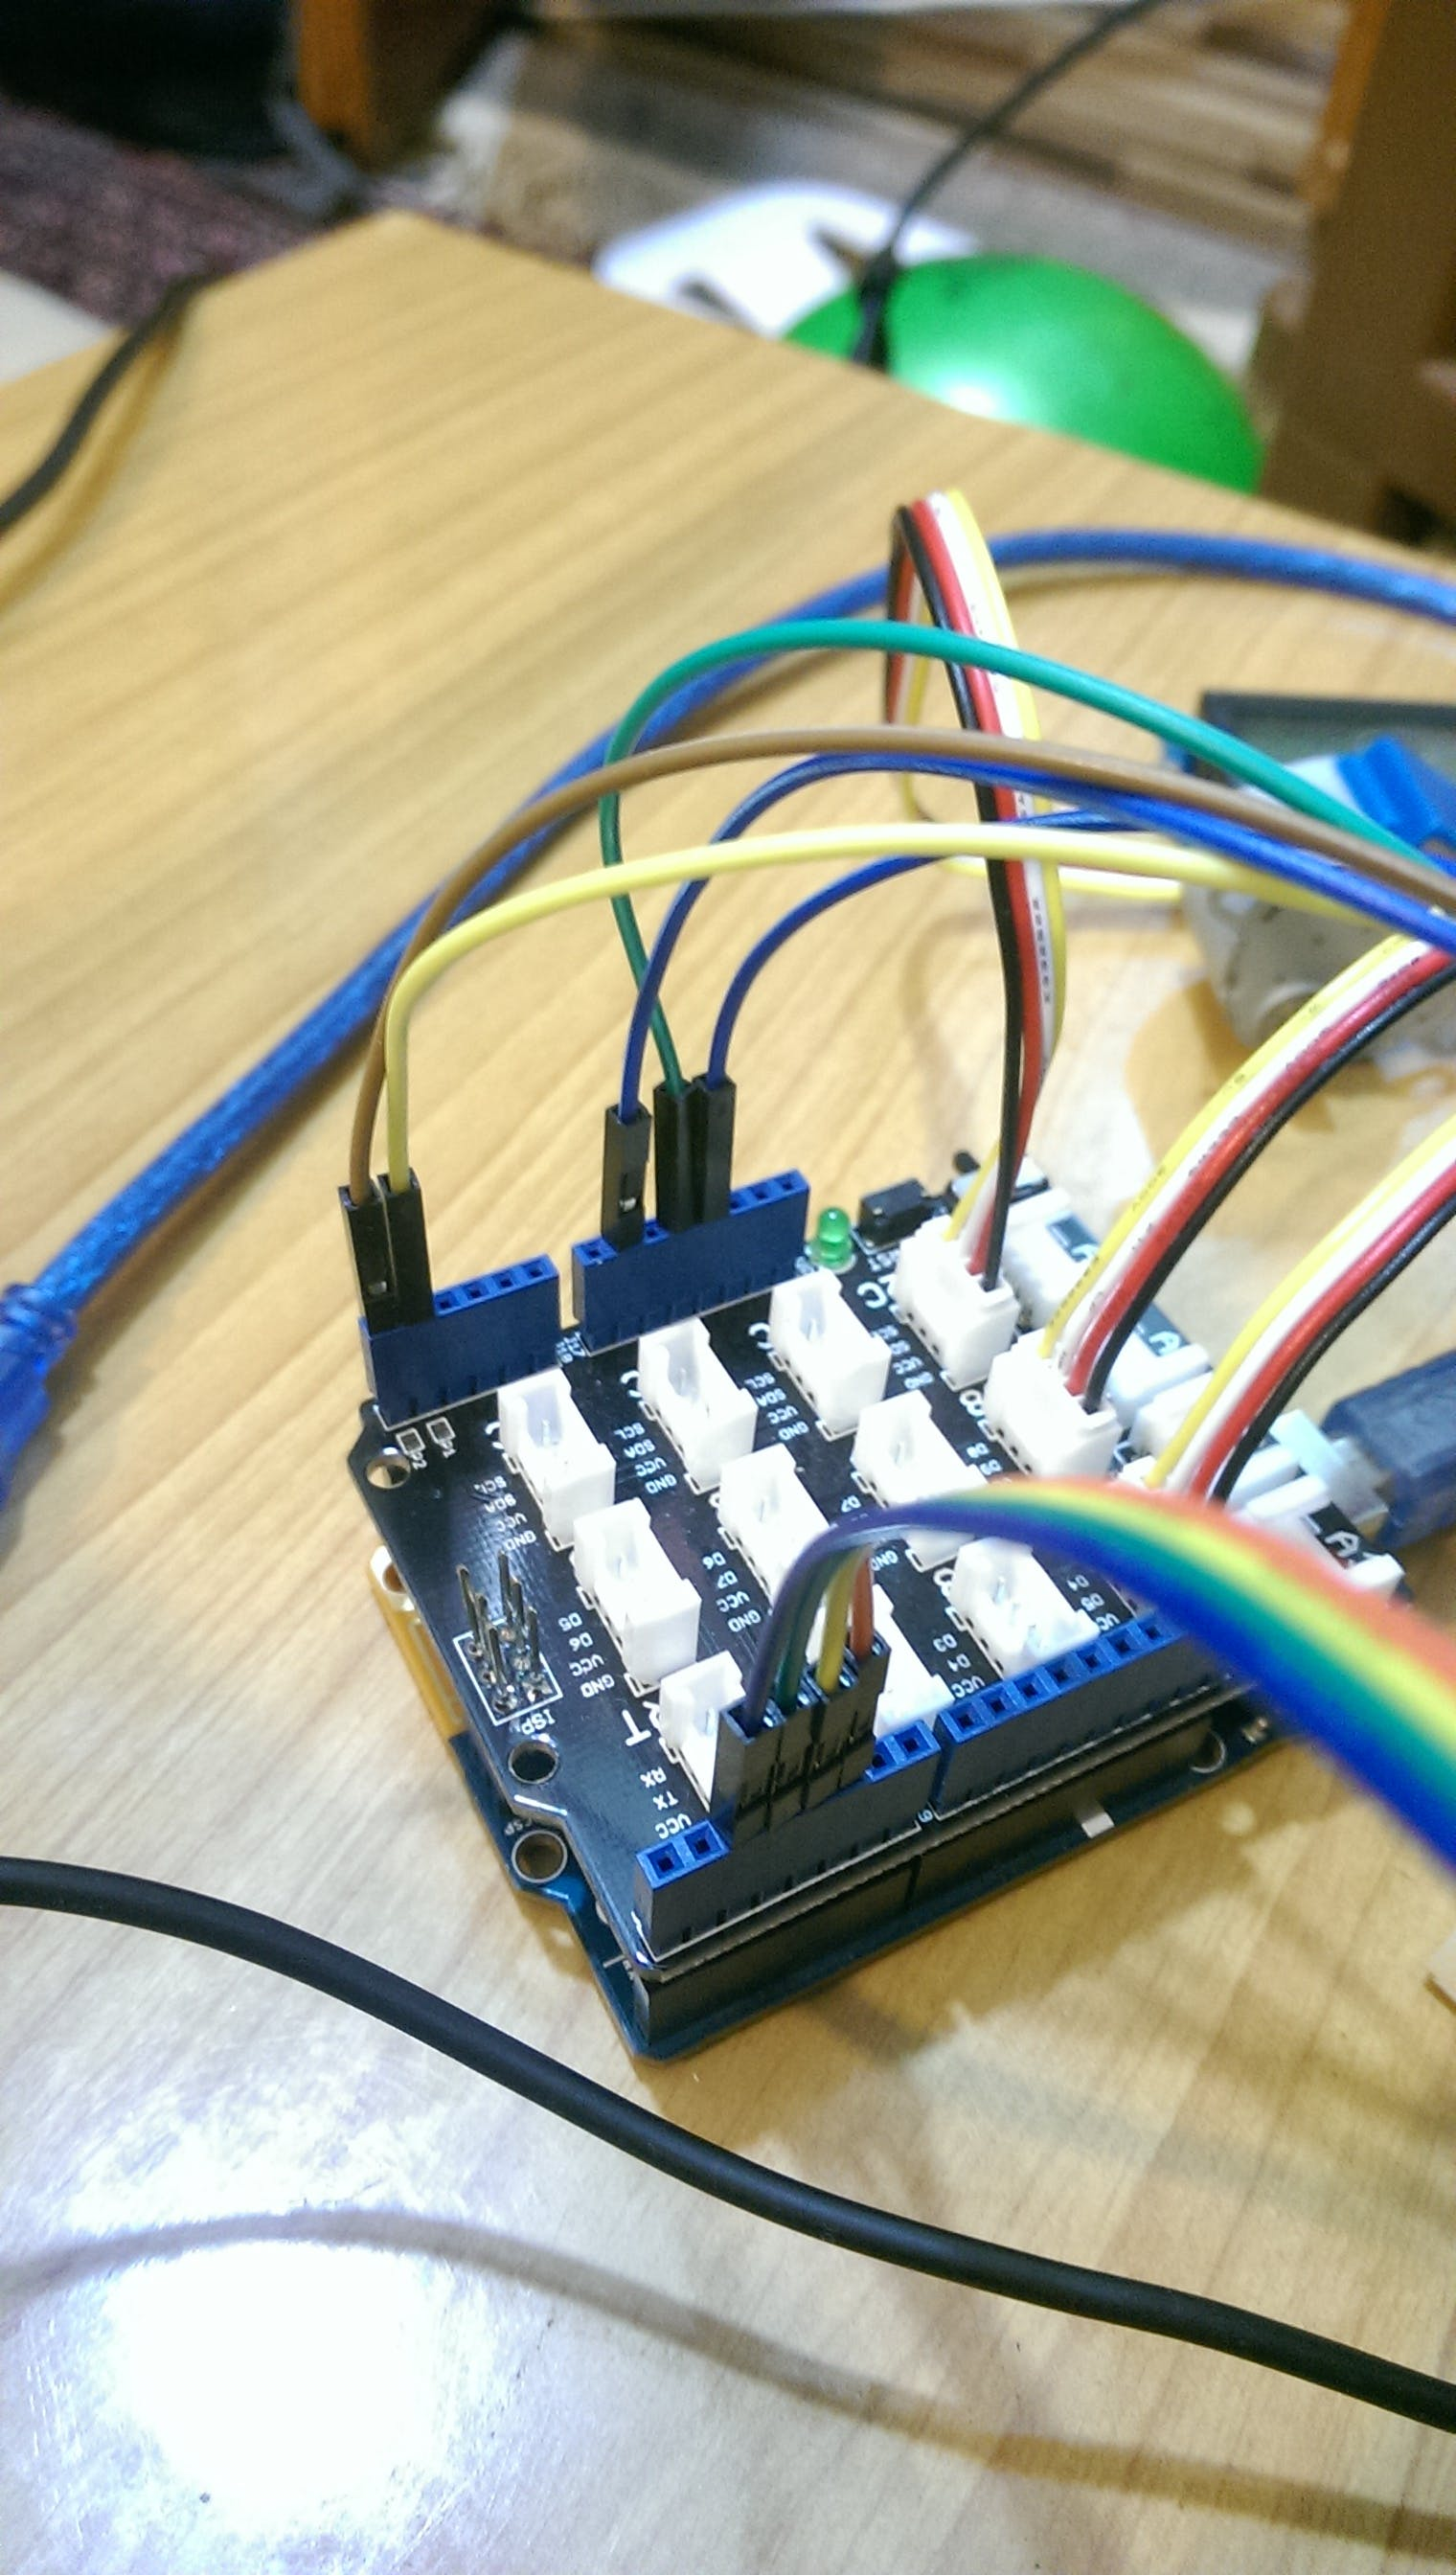 step motor driver's wires